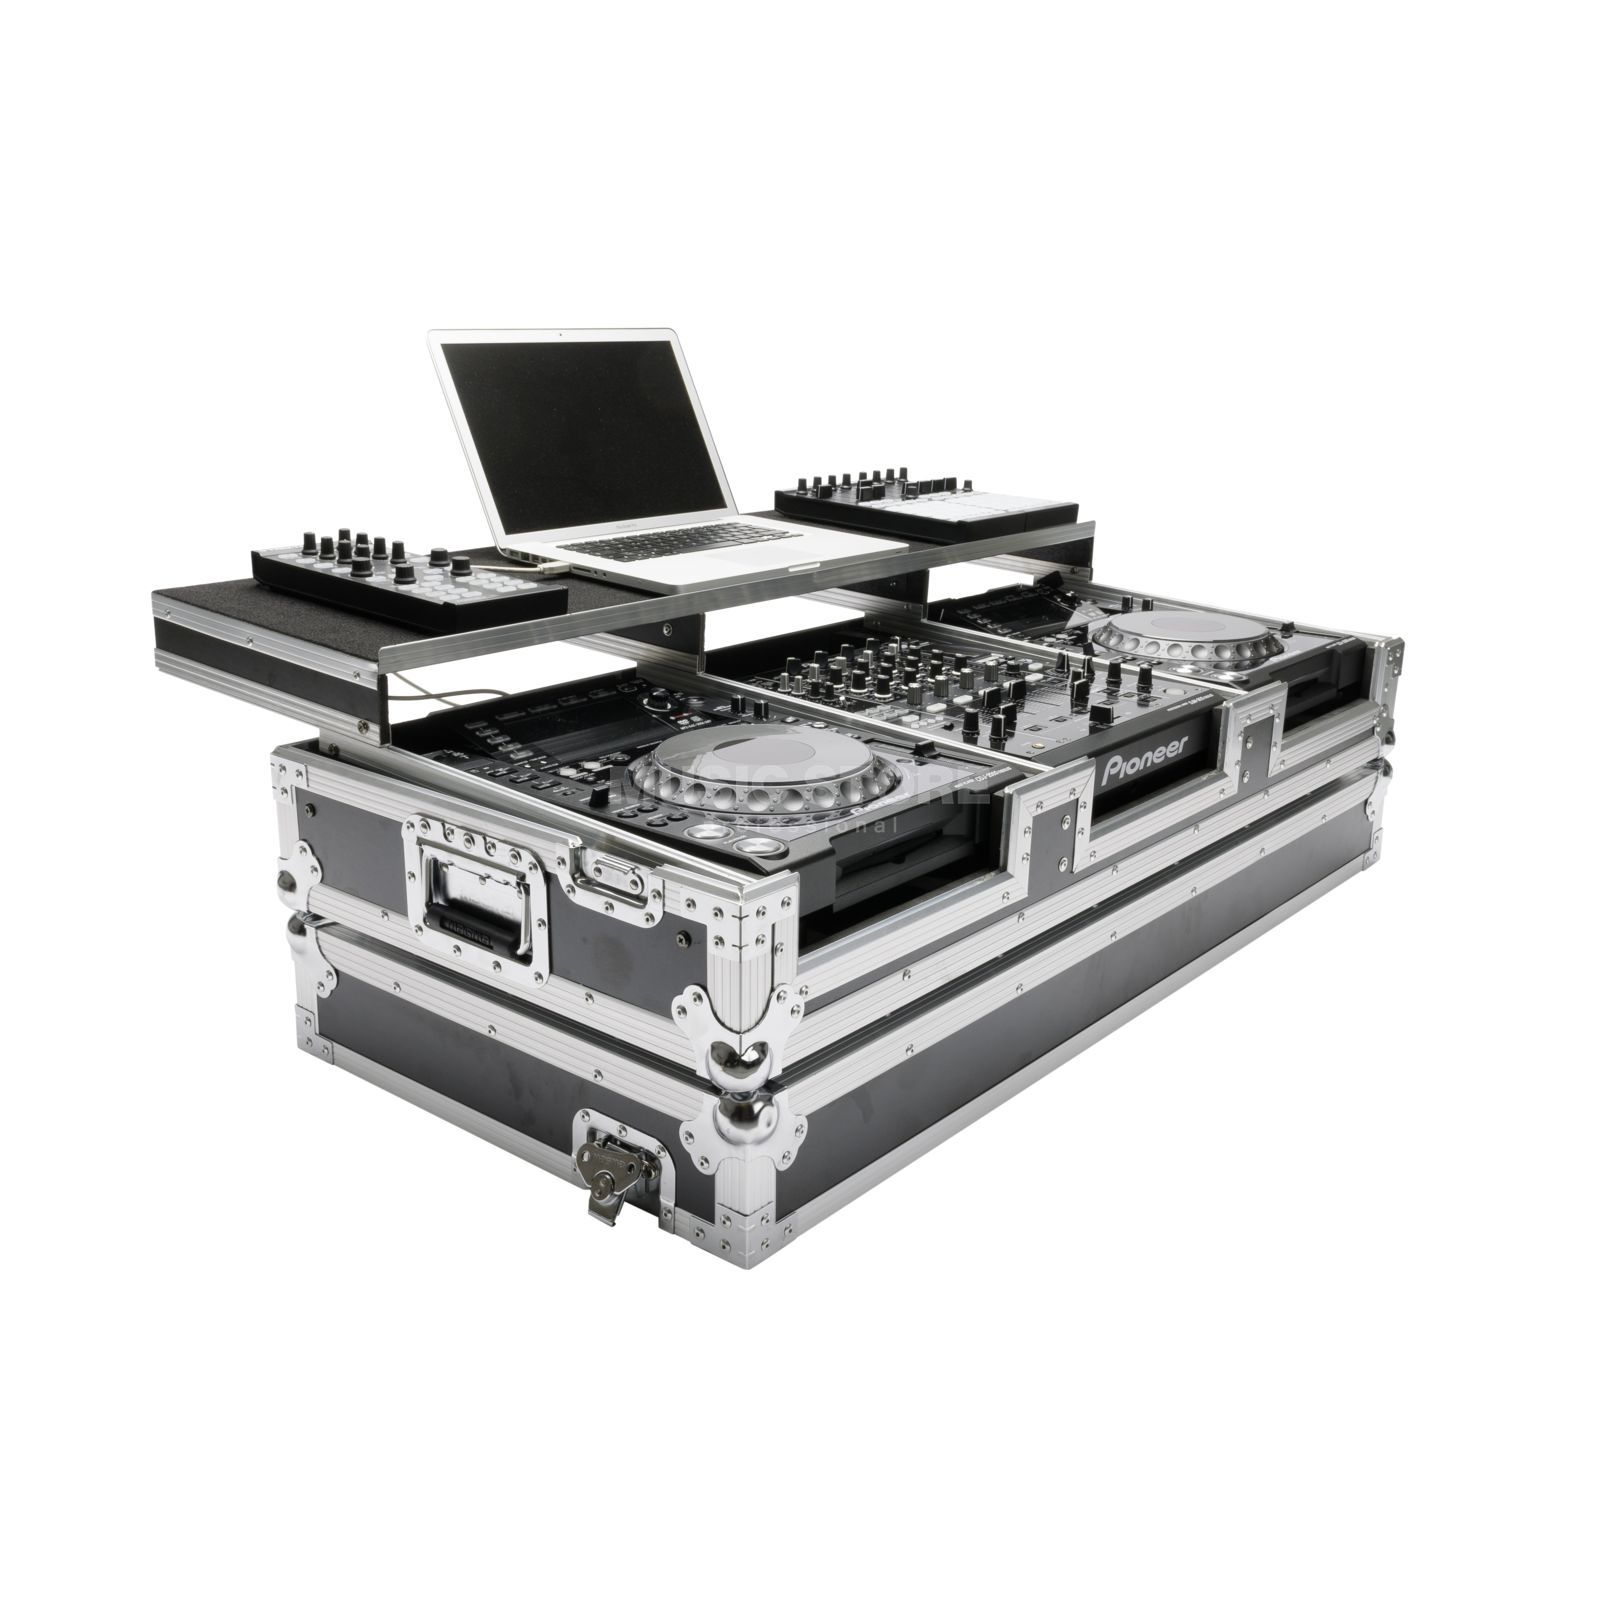 Magma CDJ-Workstation 2000/900 NEXUS  Produktbild